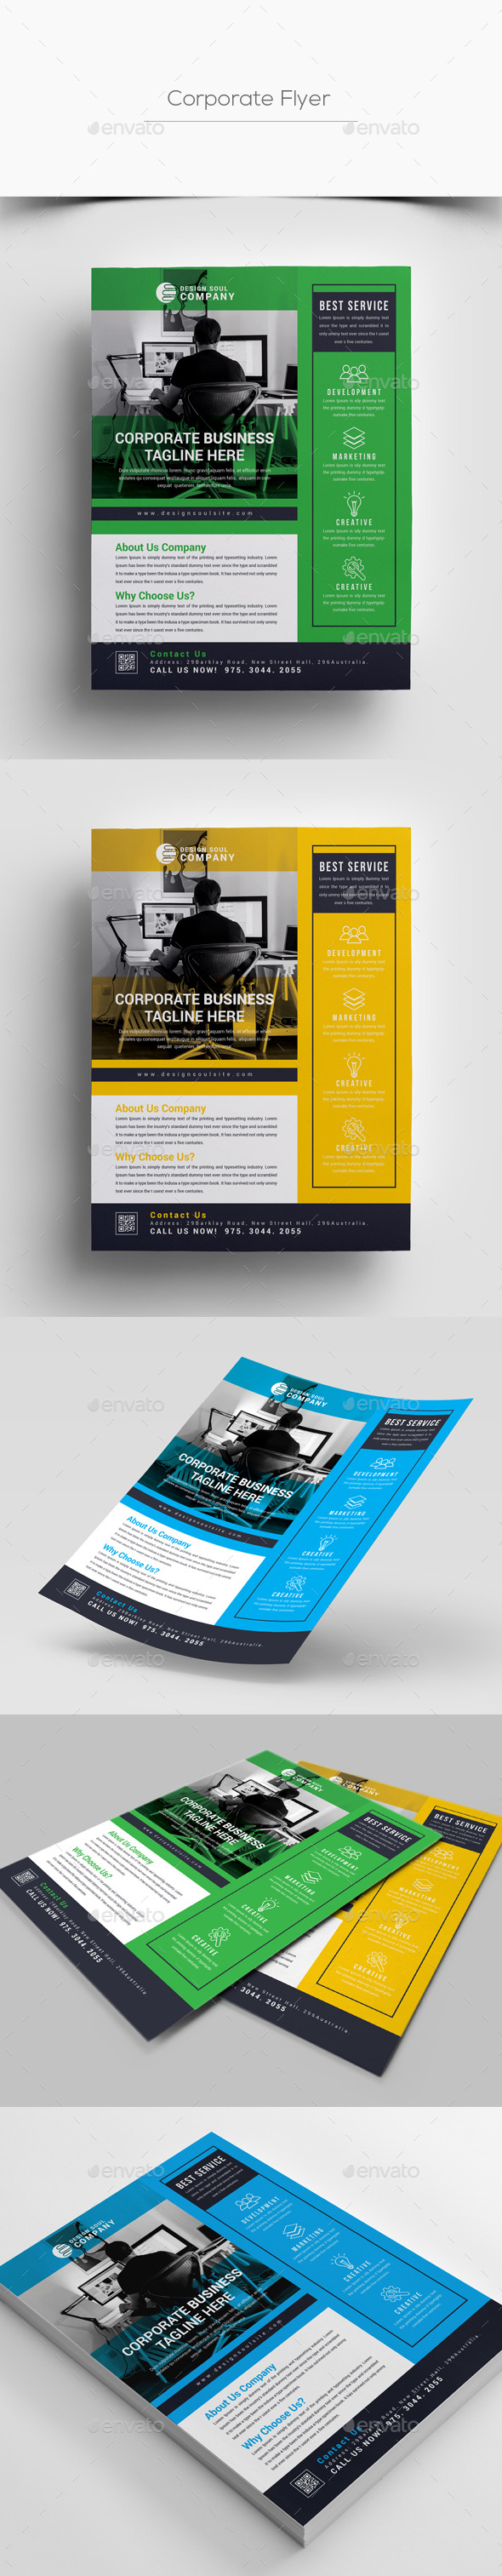 GraphicRiver Corporate Flyer 20991945